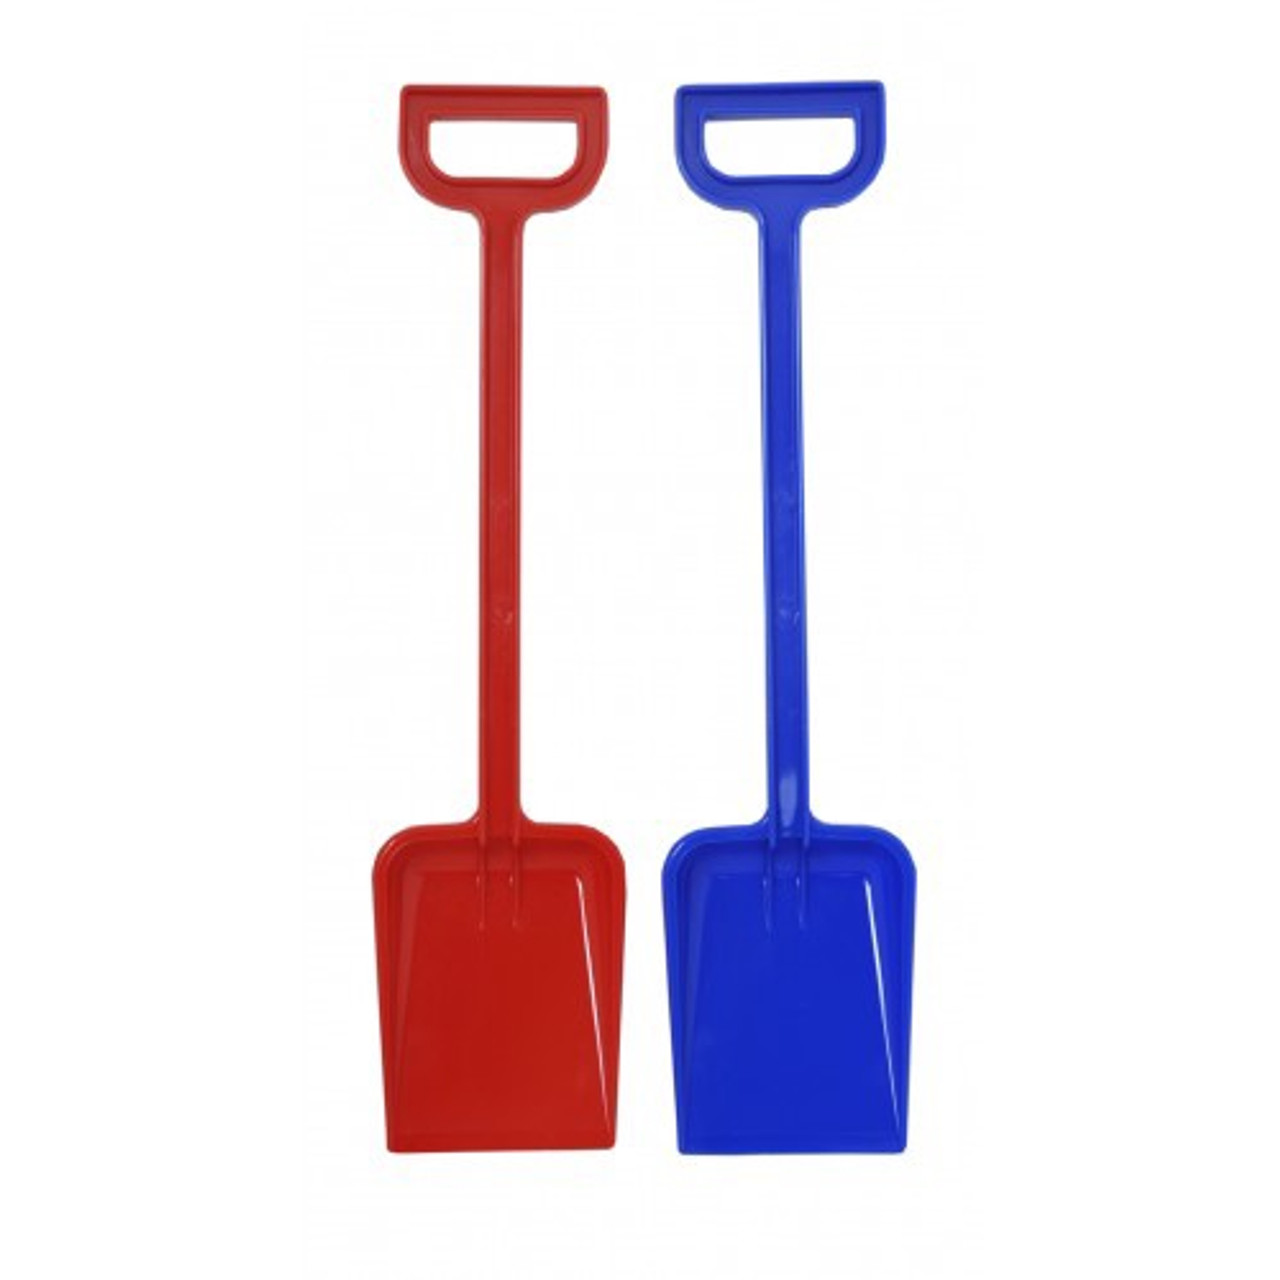 Plasto Sand Spade 50cm at Baby Barn Discounts Plasto sand spade is sturdy and good for toddlers to be able to scoop up a decent amount of sand.